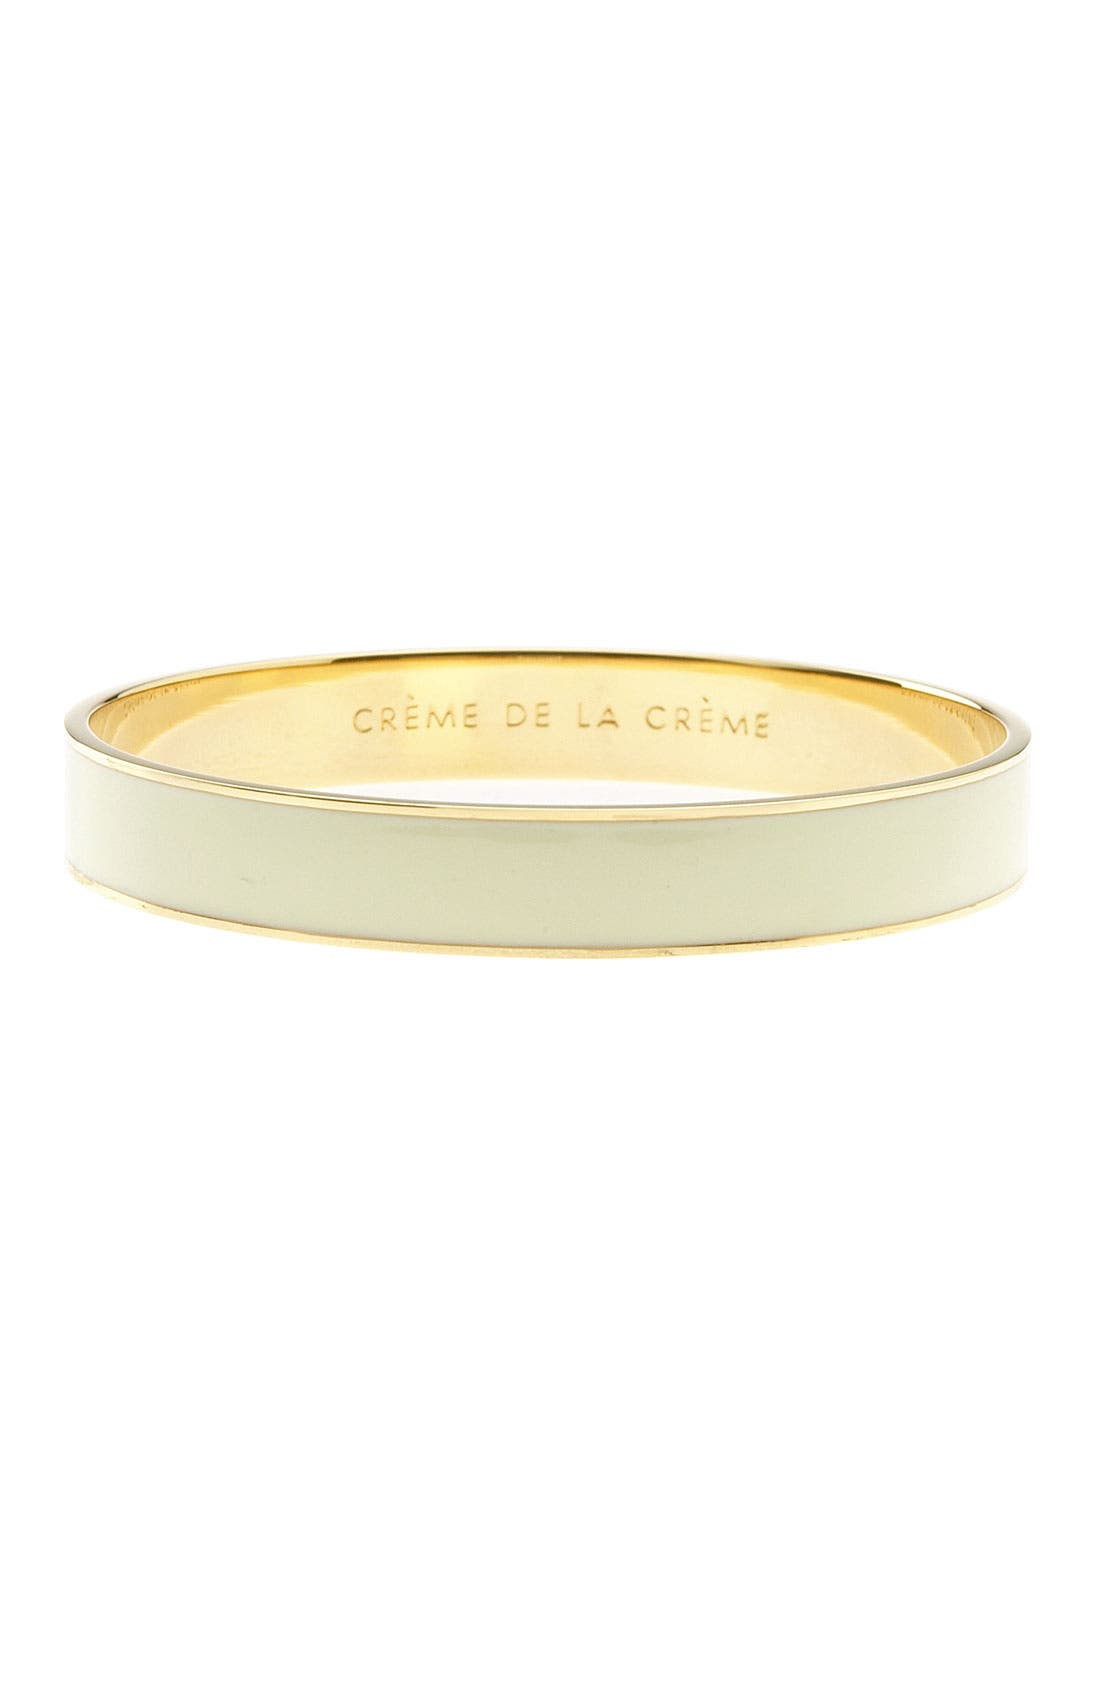 Main Image - kate spade new york 'idiom - crème de la crème' bangle